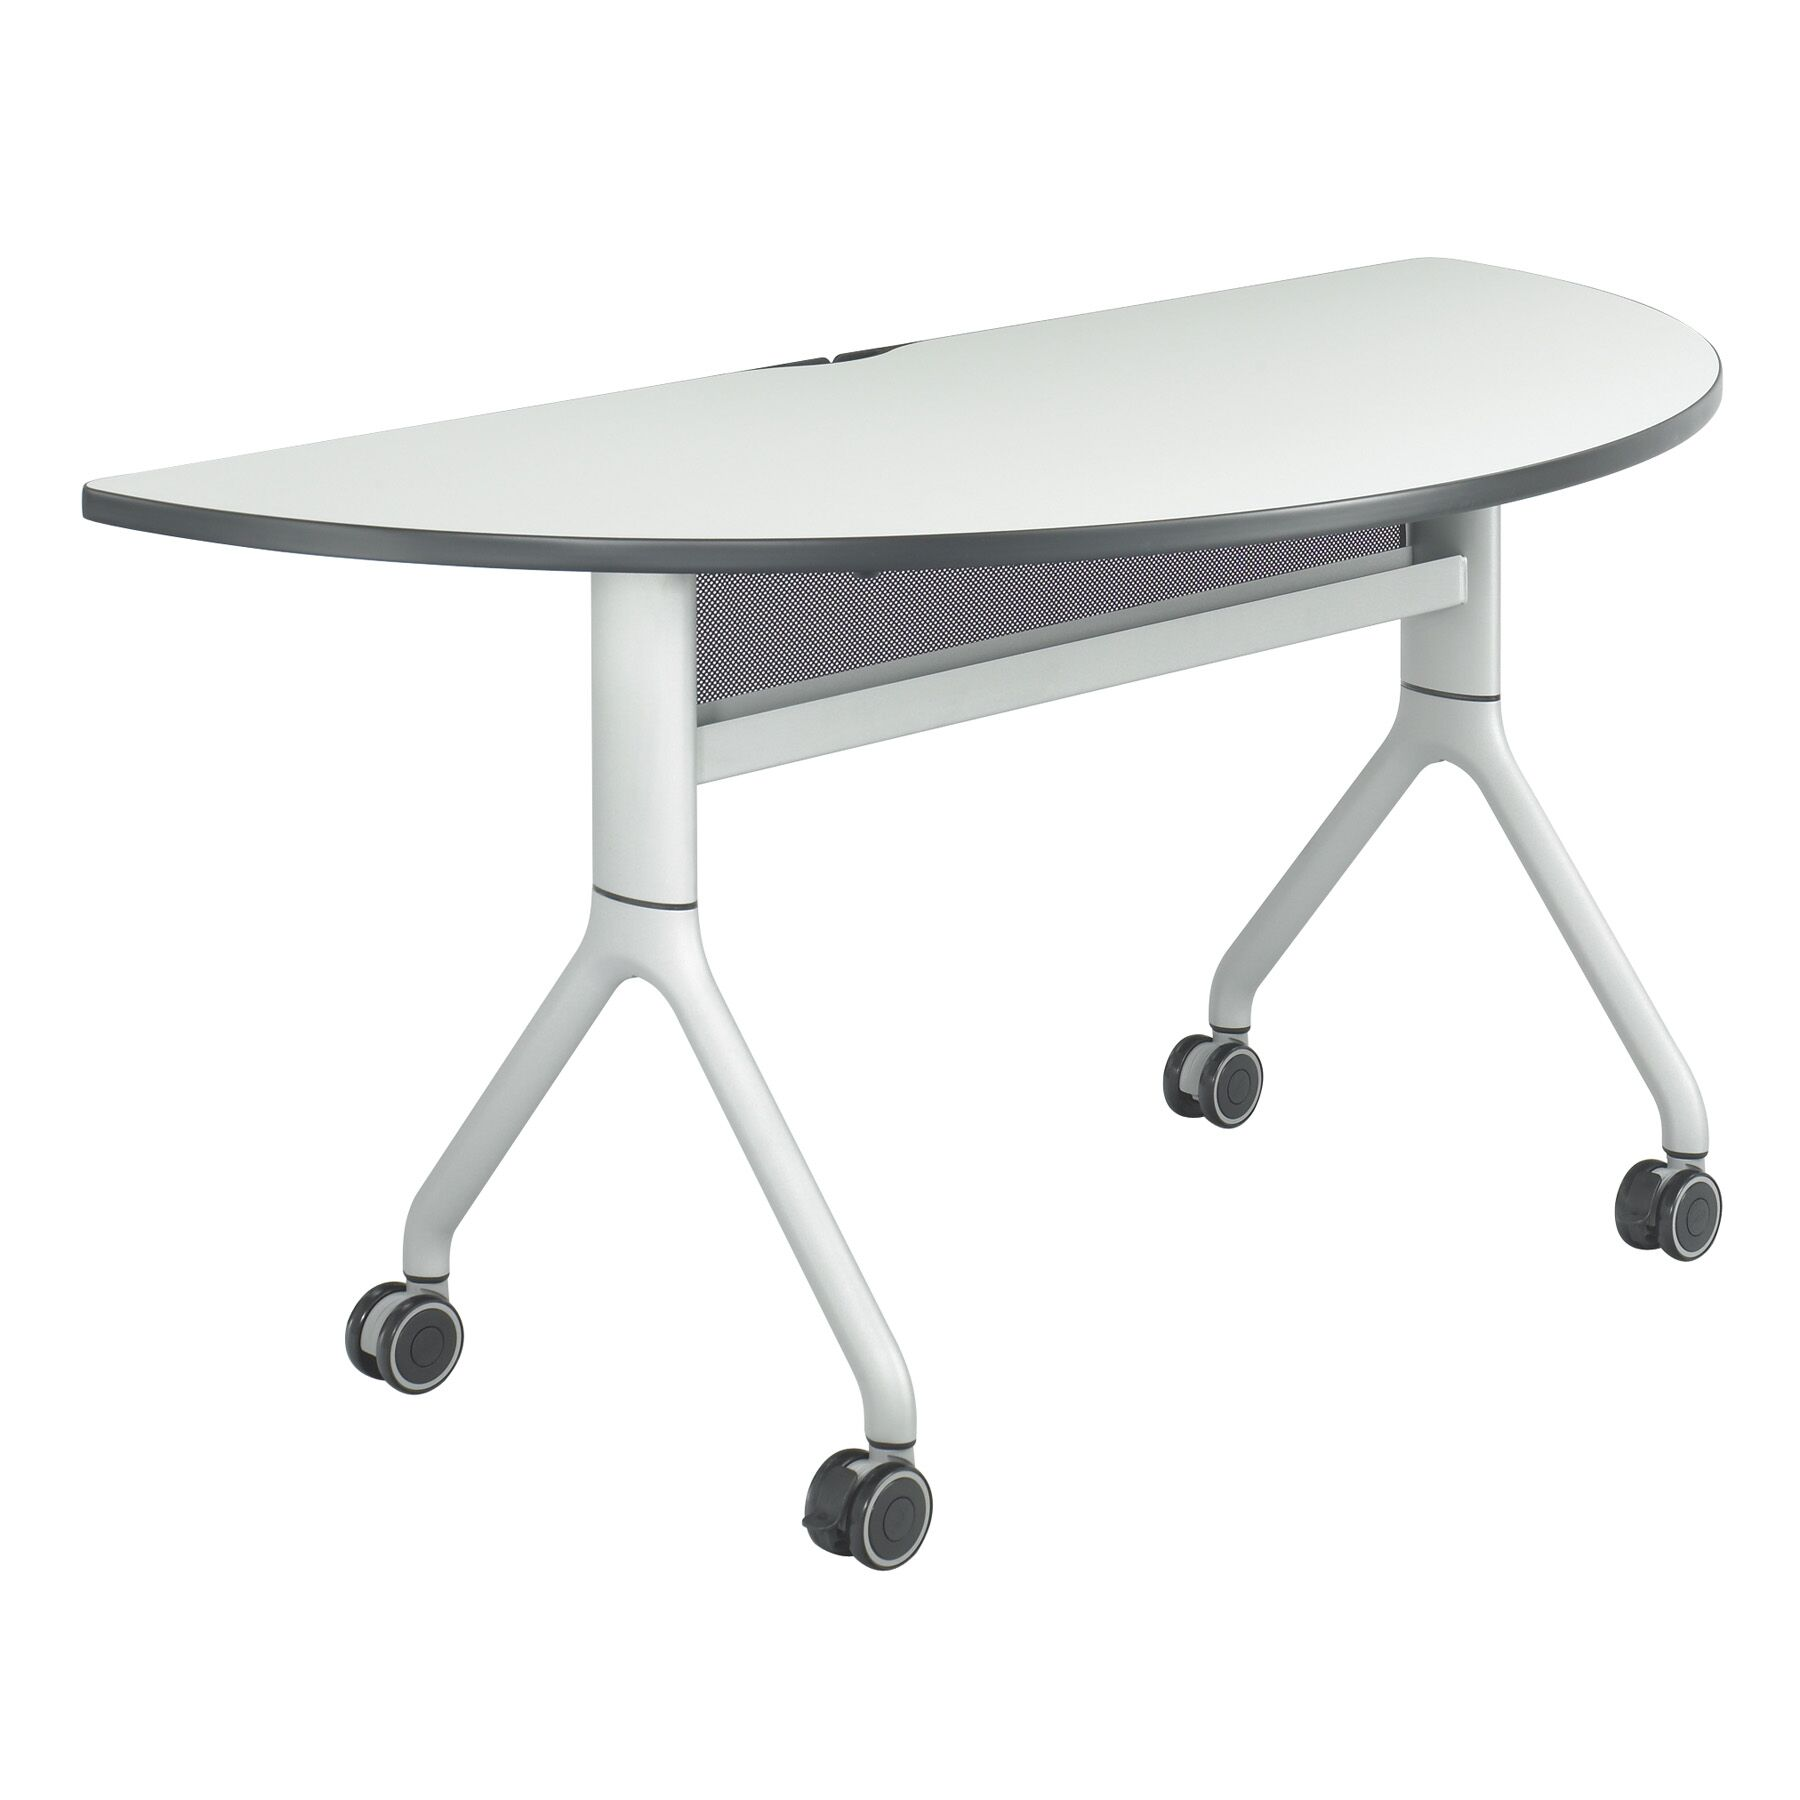 Rumba Training Table with Wheels Base Finish: Black, Tabletop Finish: Gray, Size: 48 x 24